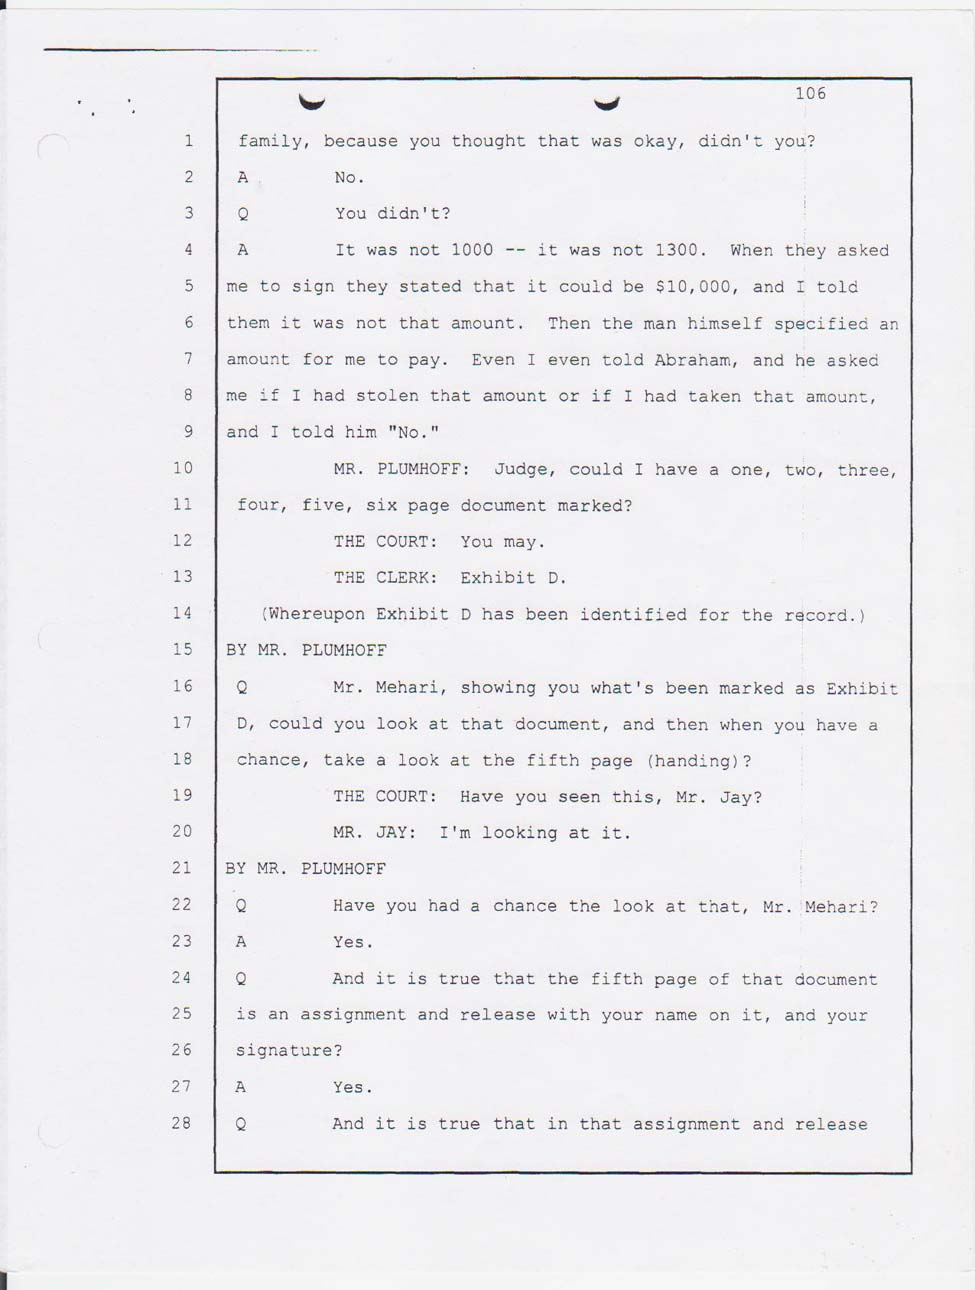 Angesom's court testimony Jan. 23, 2008